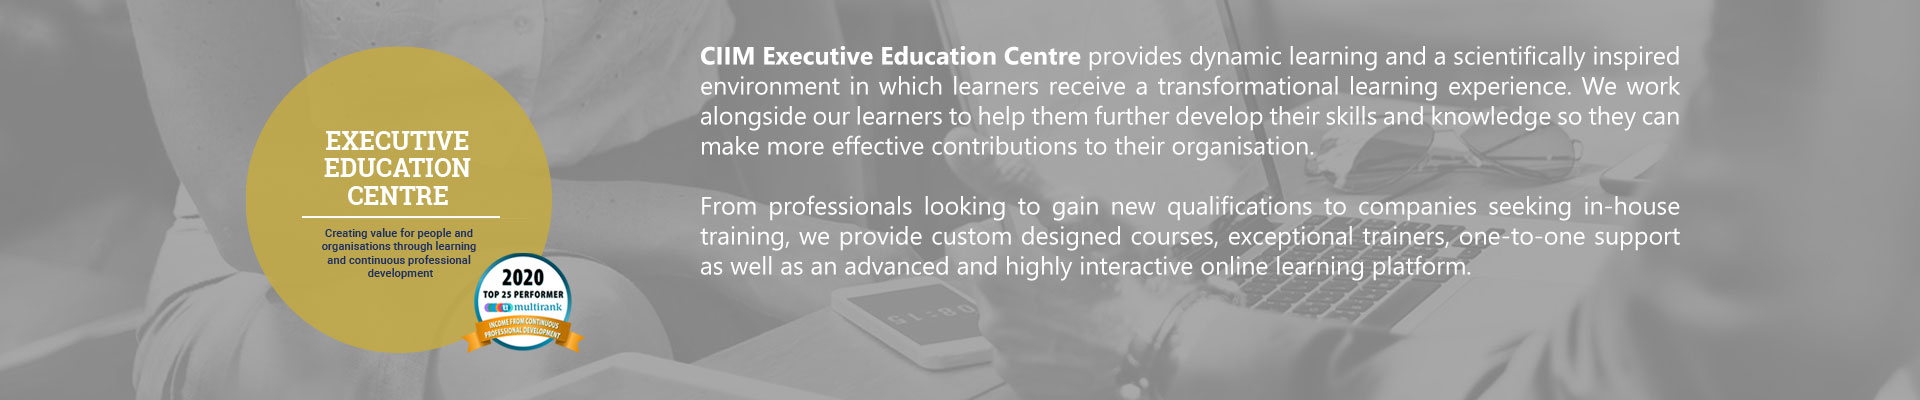 Executive Education Centre